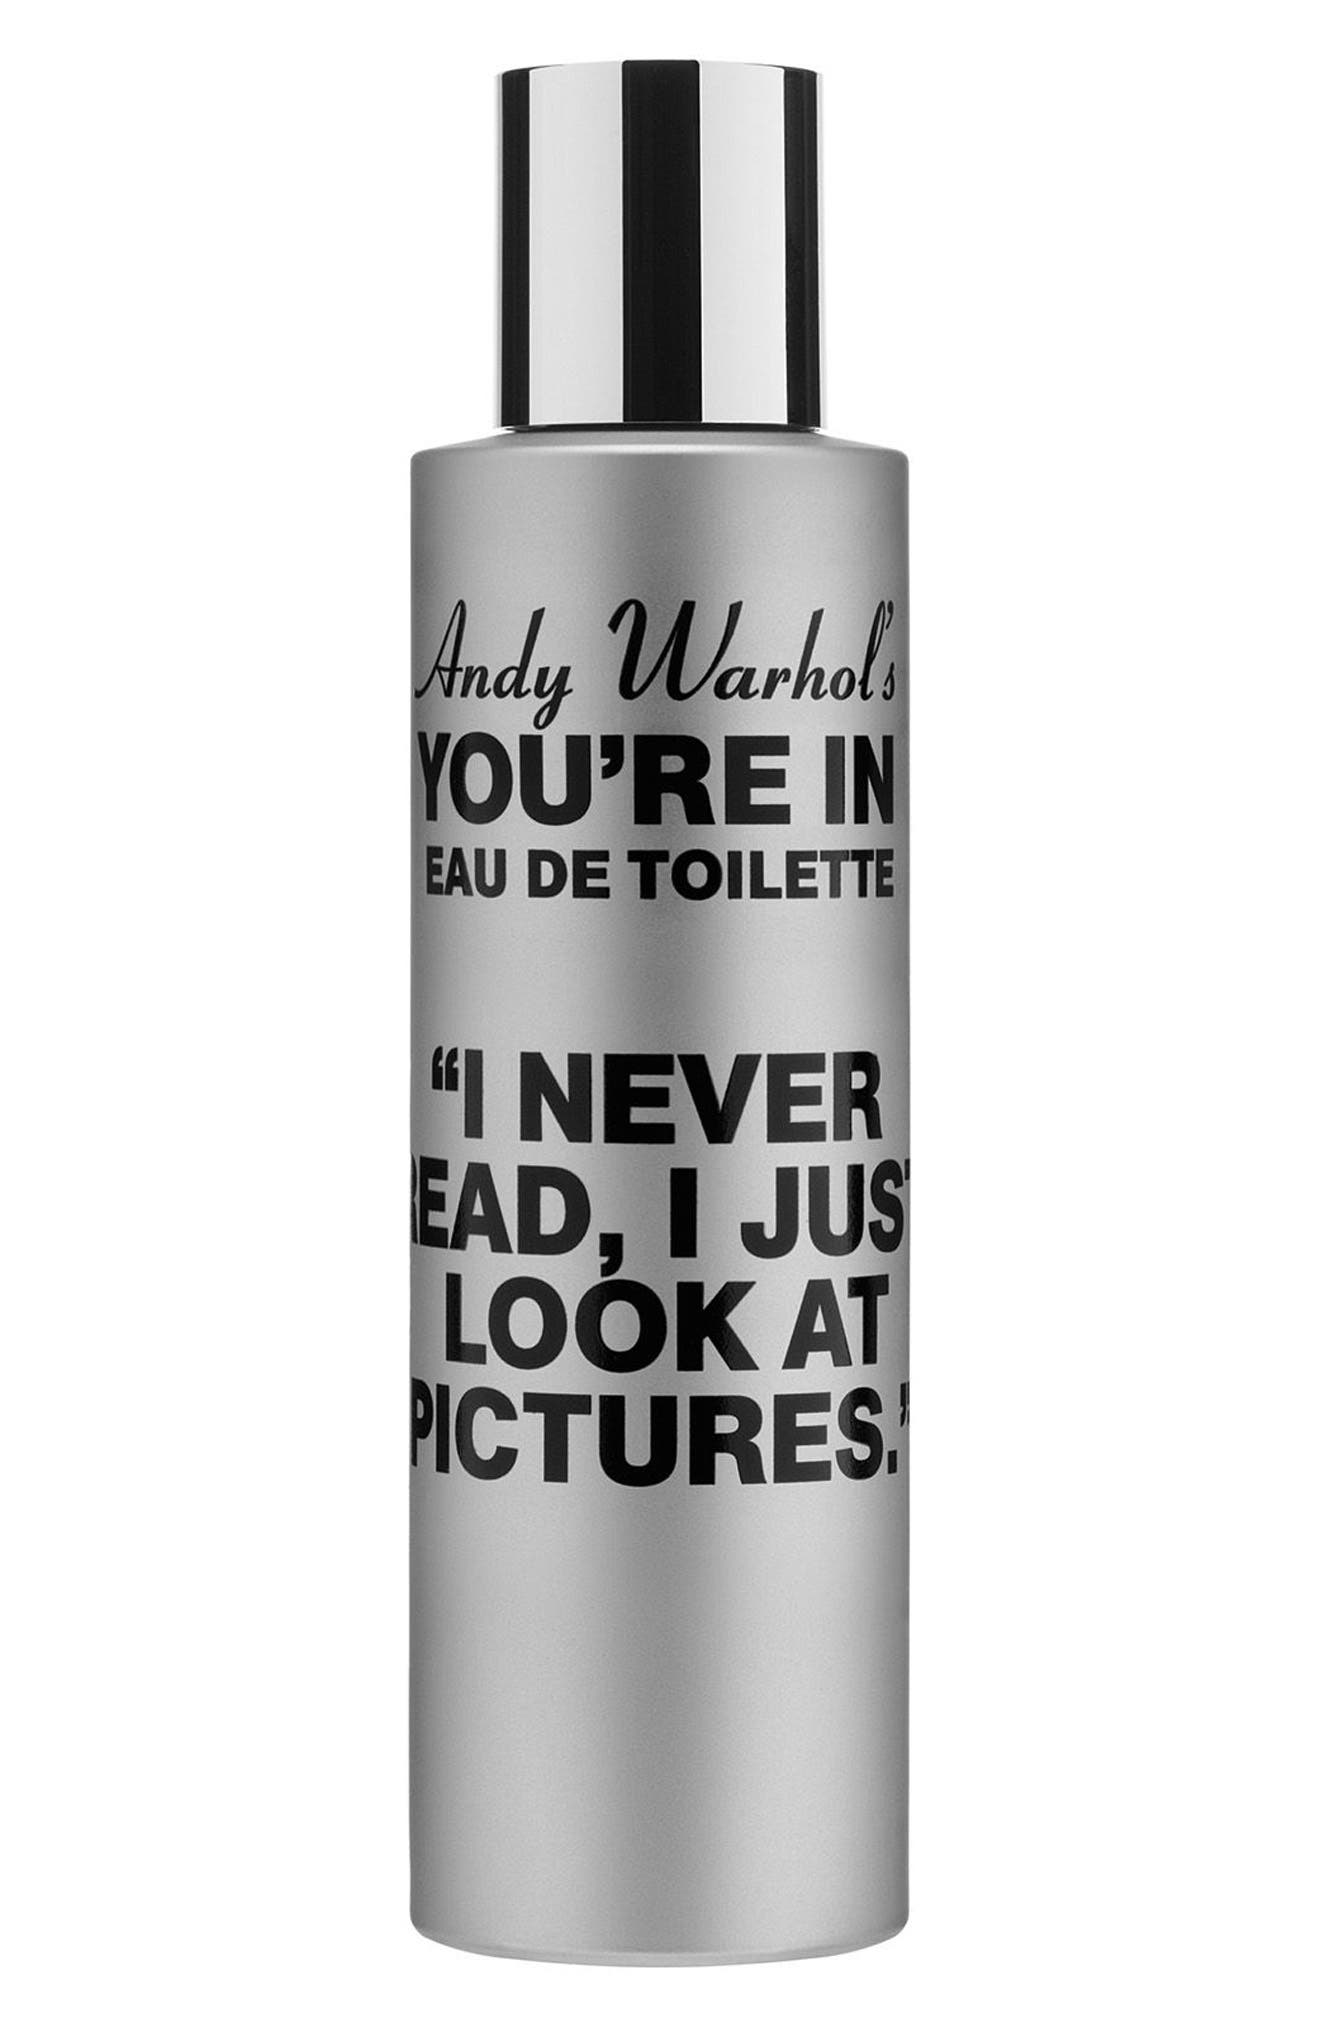 Main Image - Comme des Garçons Andy Warhol You're In Unisex Eau de Toilette